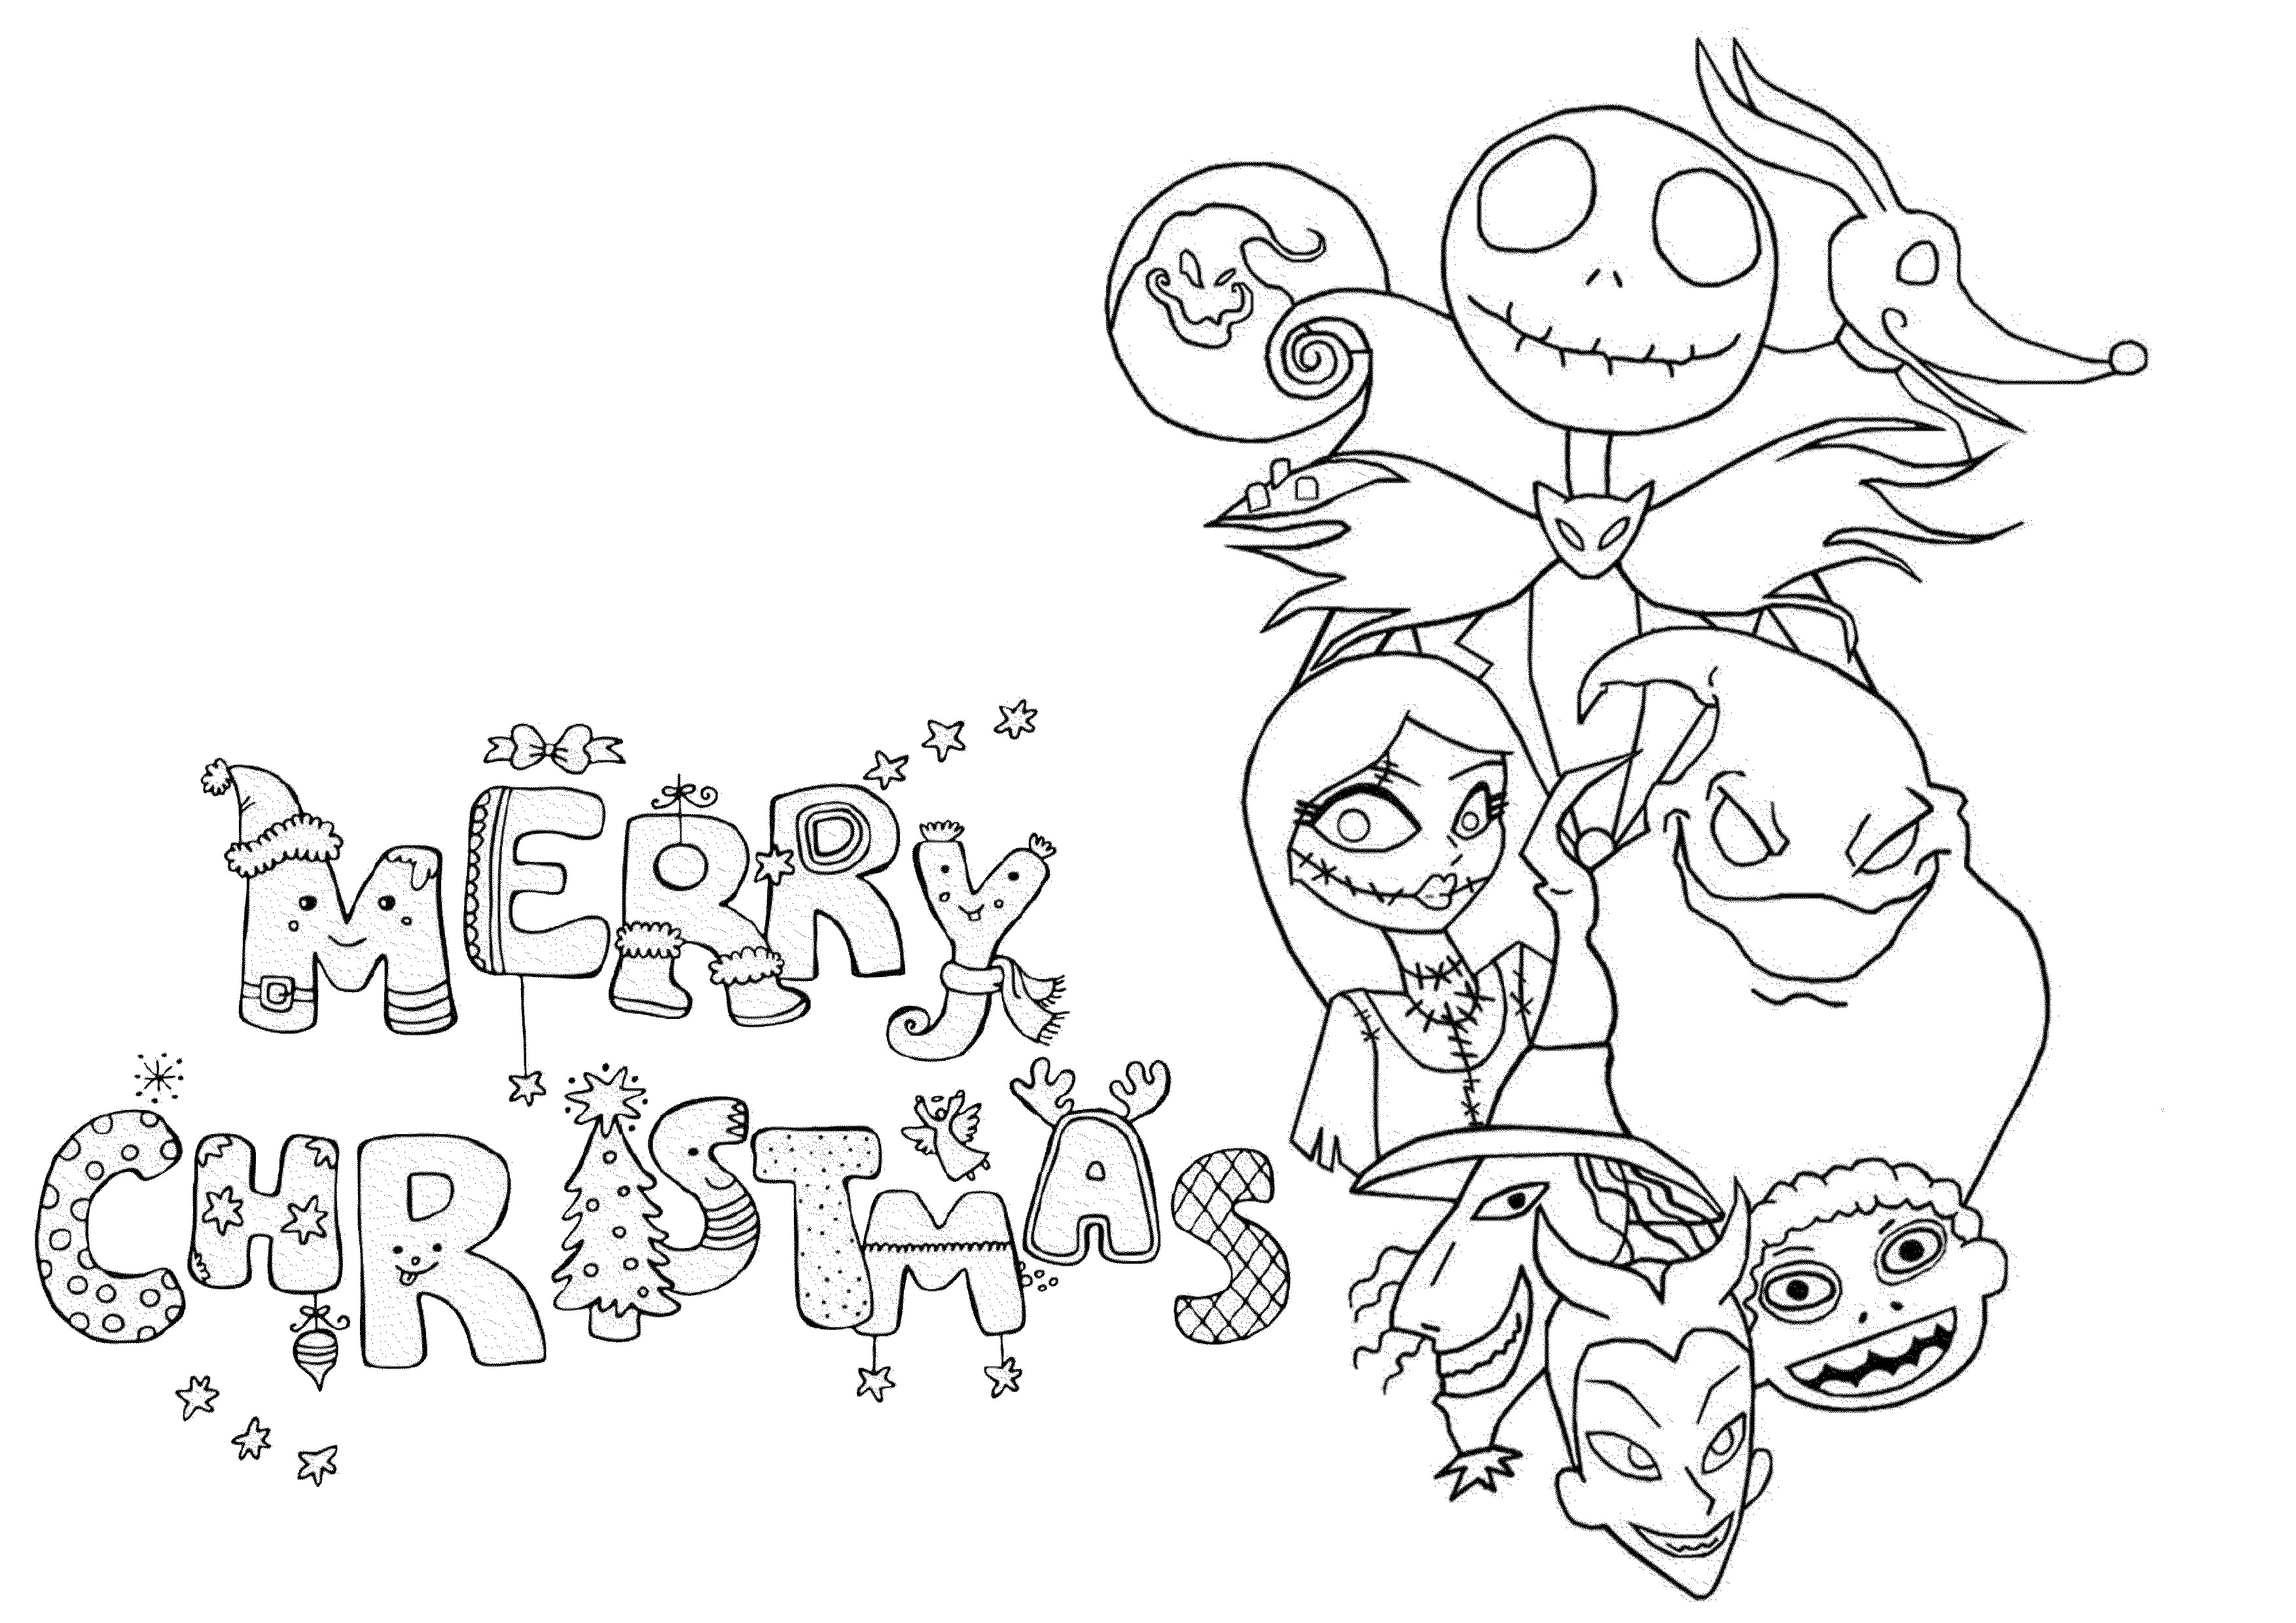 Difficult Christmas Coloring Pages For Kids  Difficult Christmas Coloring Pages Free